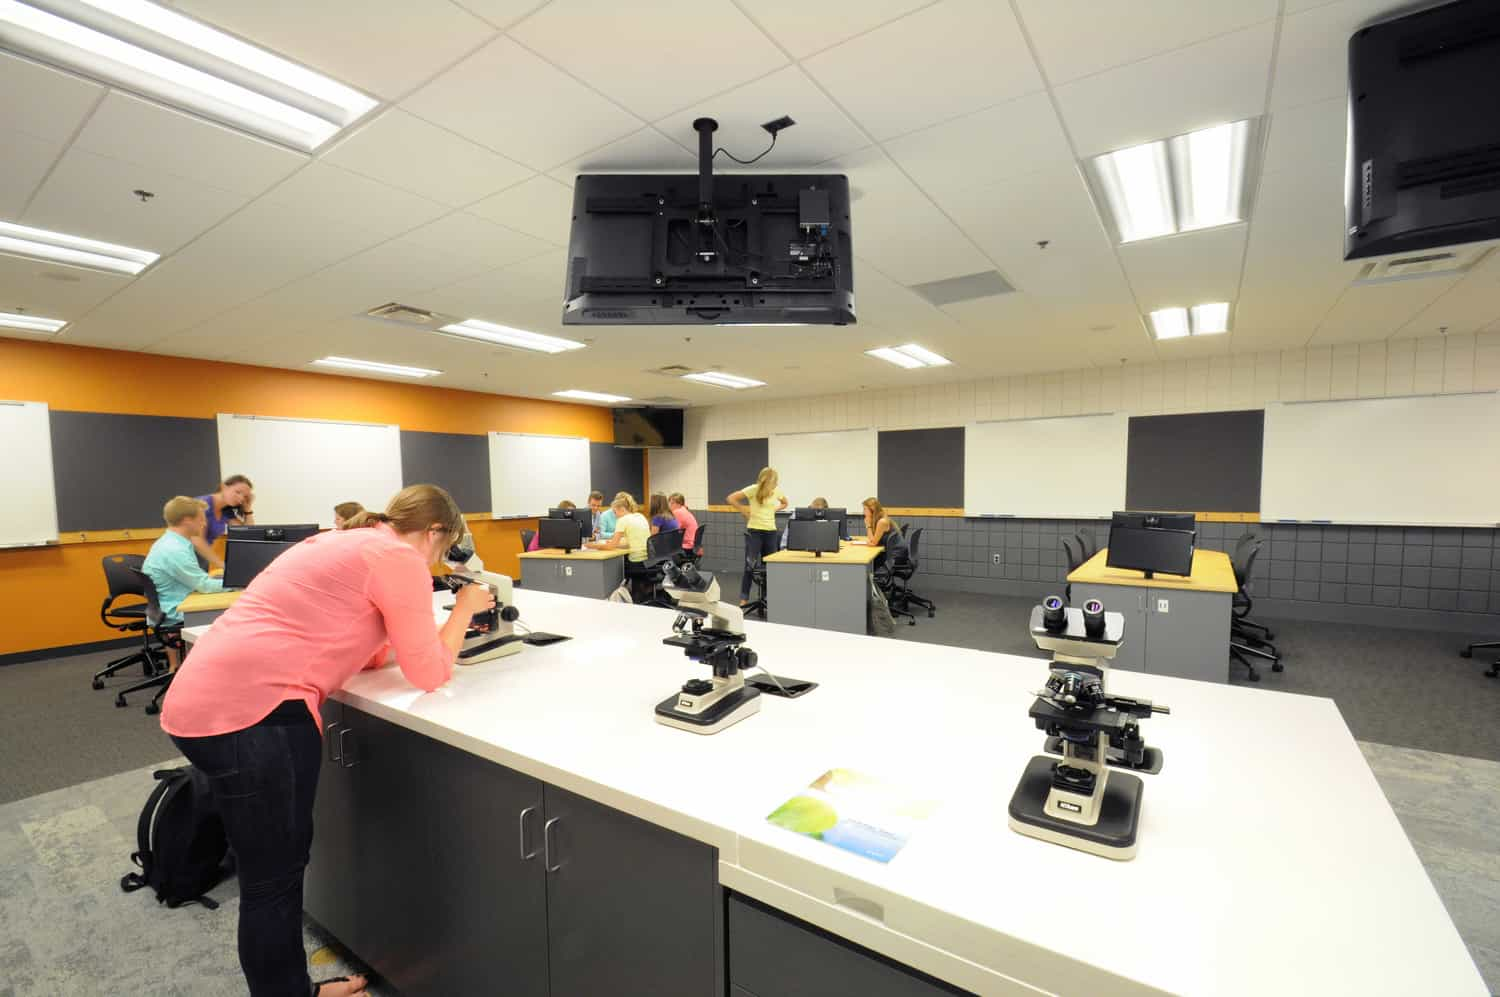 UNIVERSITY OF MINNESOTA ANIMAL SCIENCE/VETERINARY MEDICINE ACTIVE LEARNING CLASSROOM